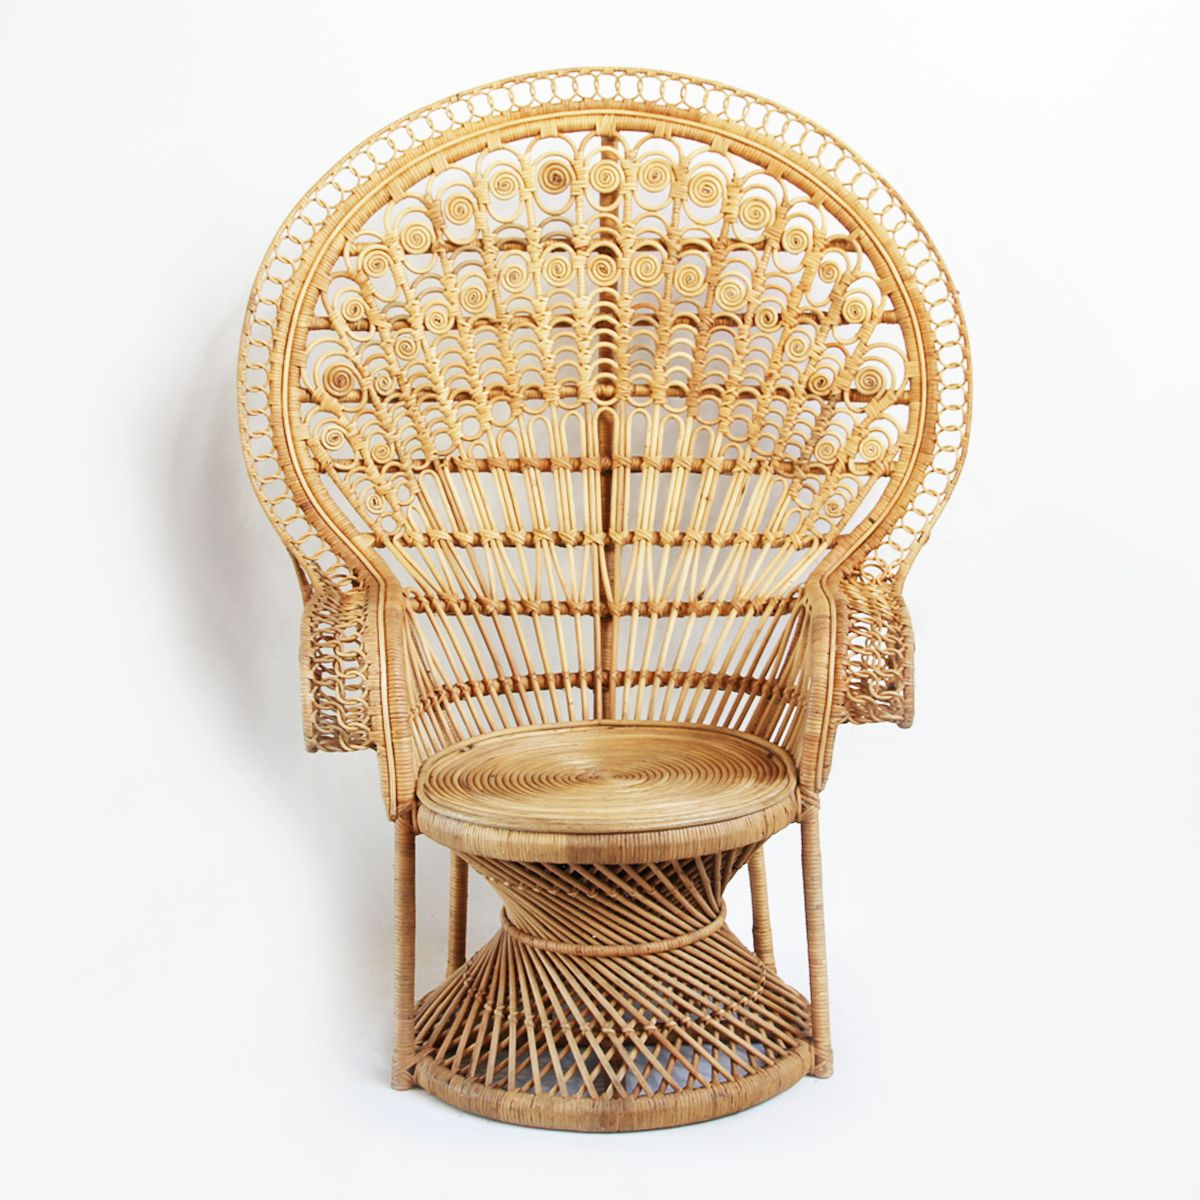 Fancy Raw Peacock Chair Furniture | Mix Furniture